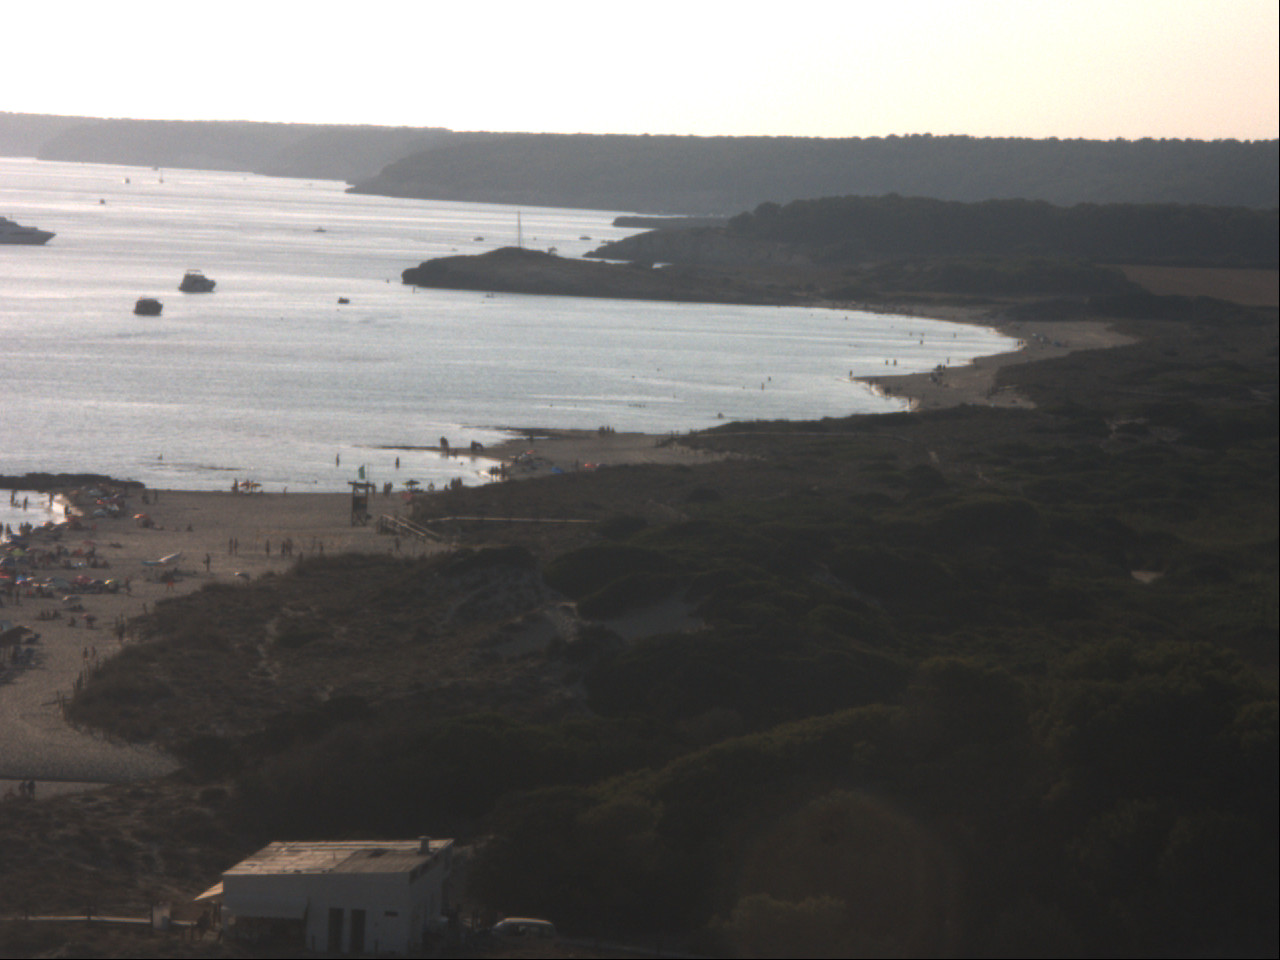 Webcam Son Bou (Minorca): Beach View Northwest